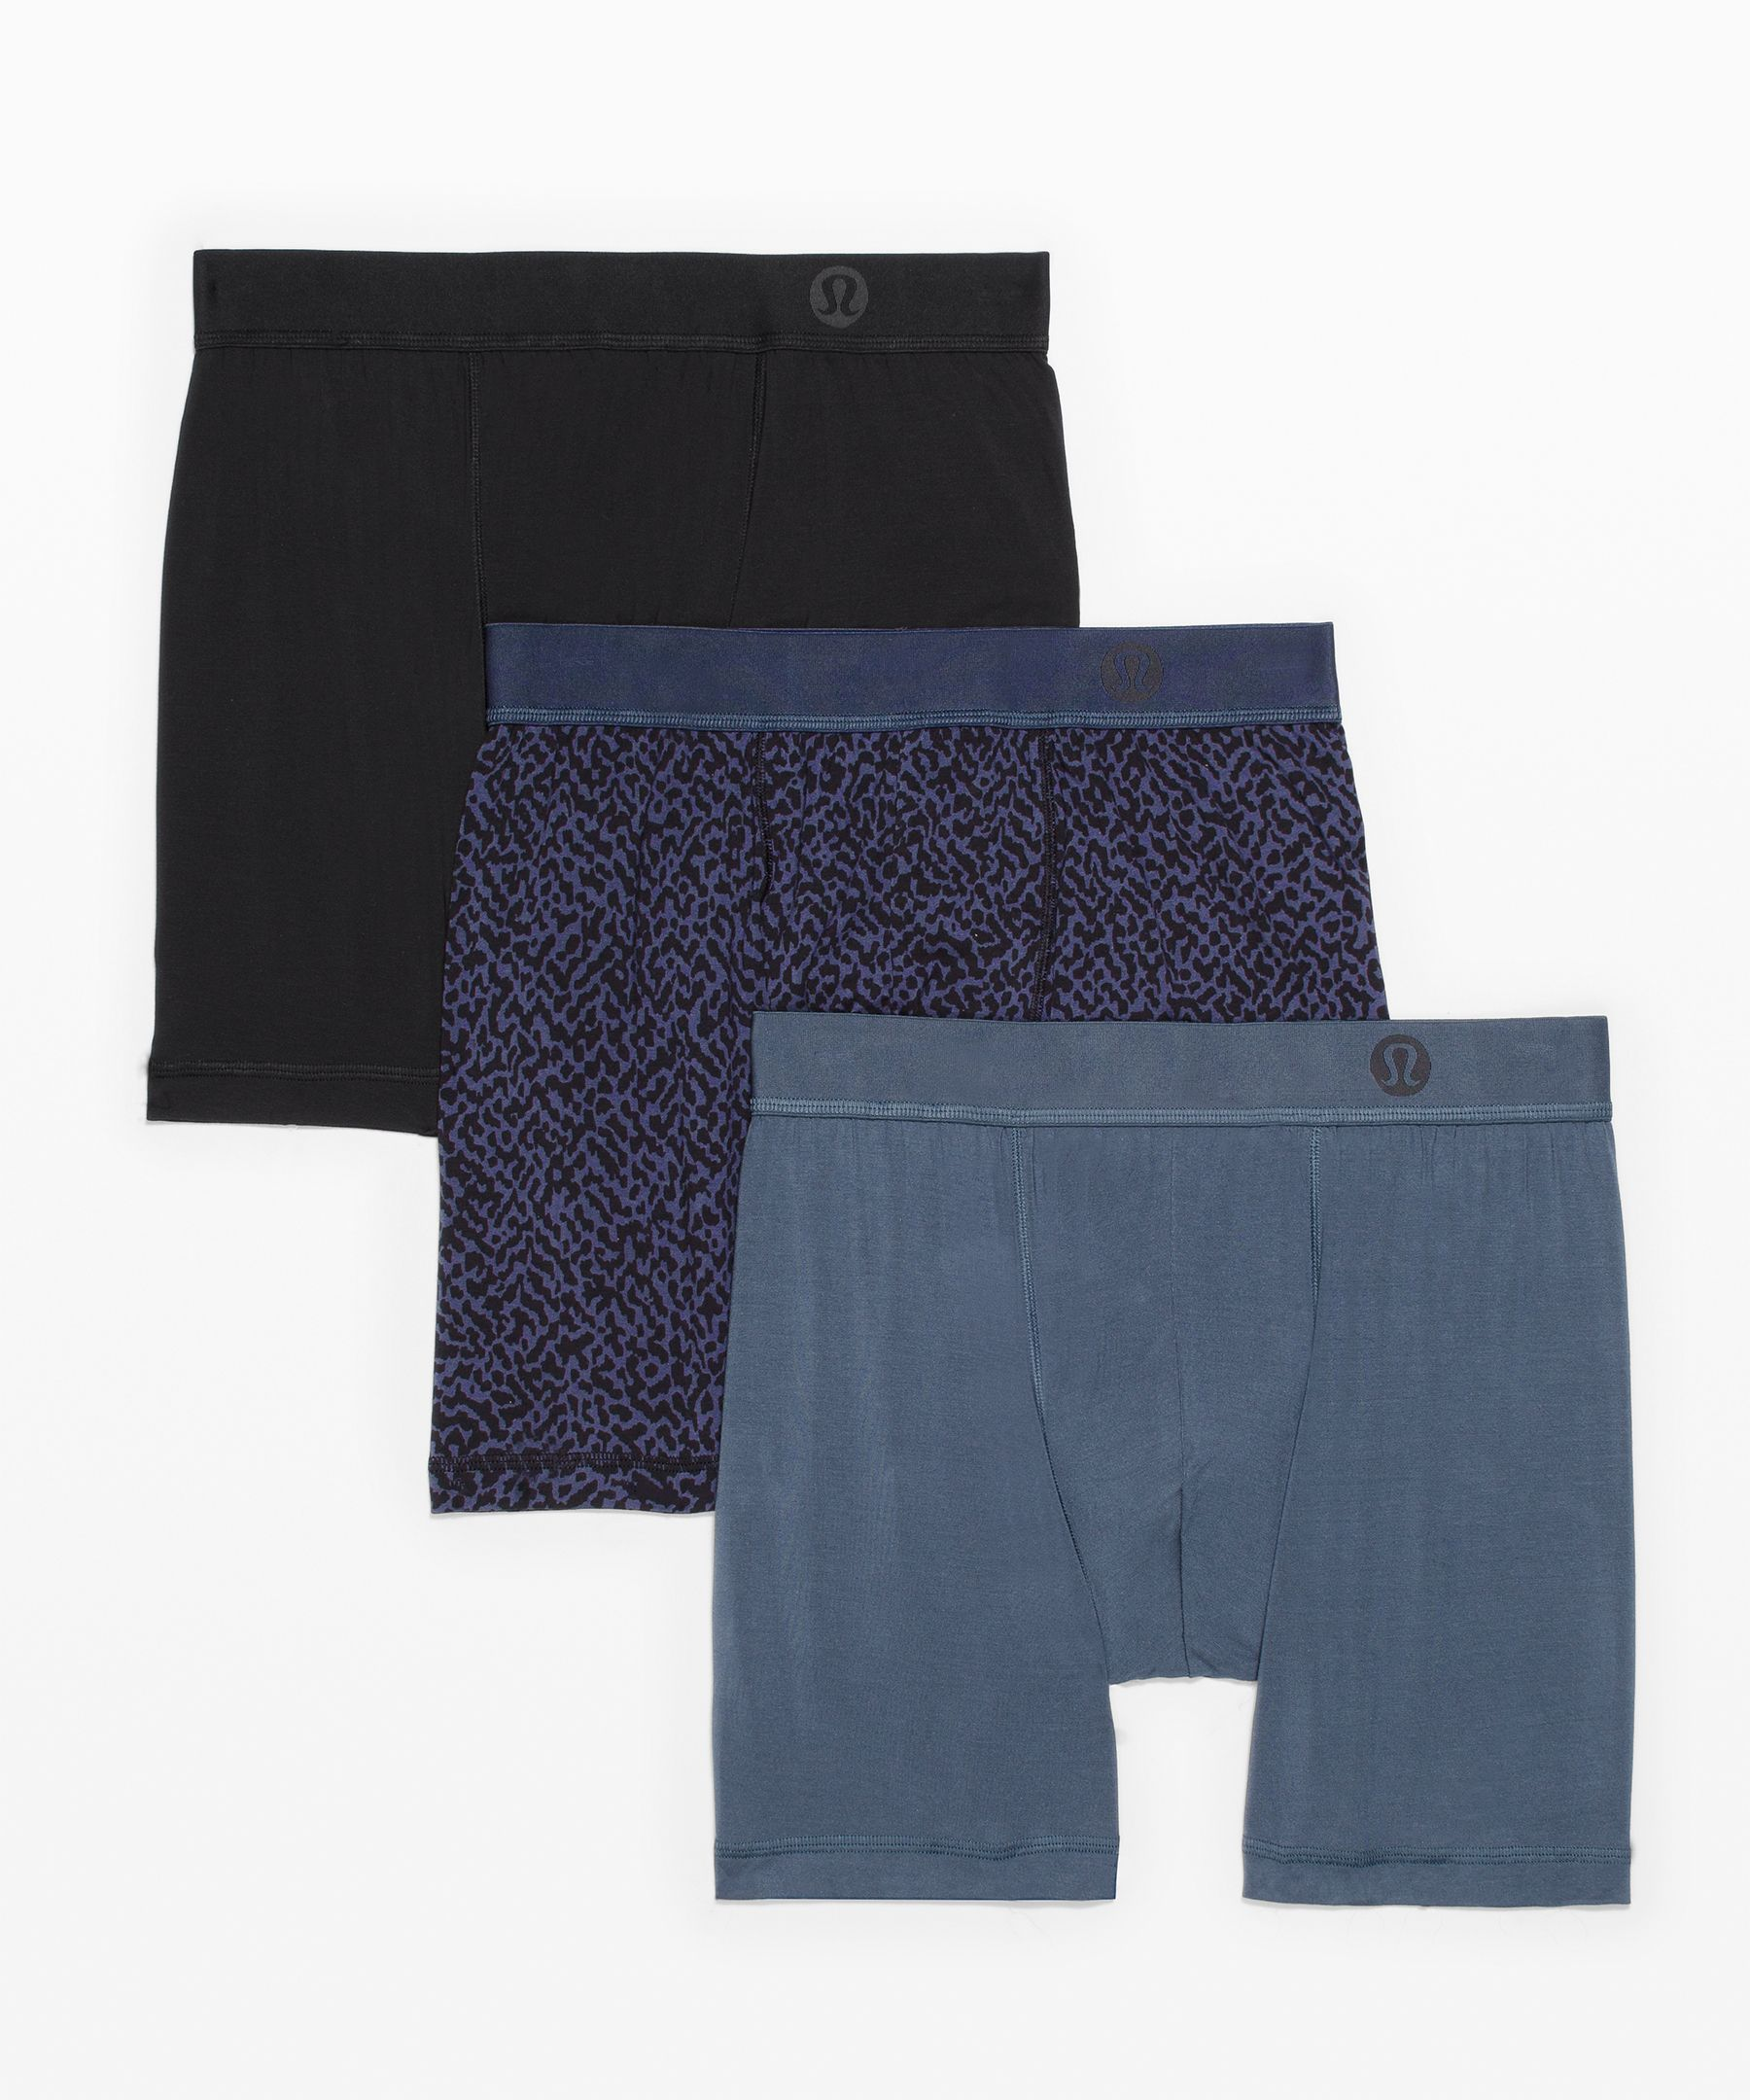 Lululemon Always In Motion Boxer 5